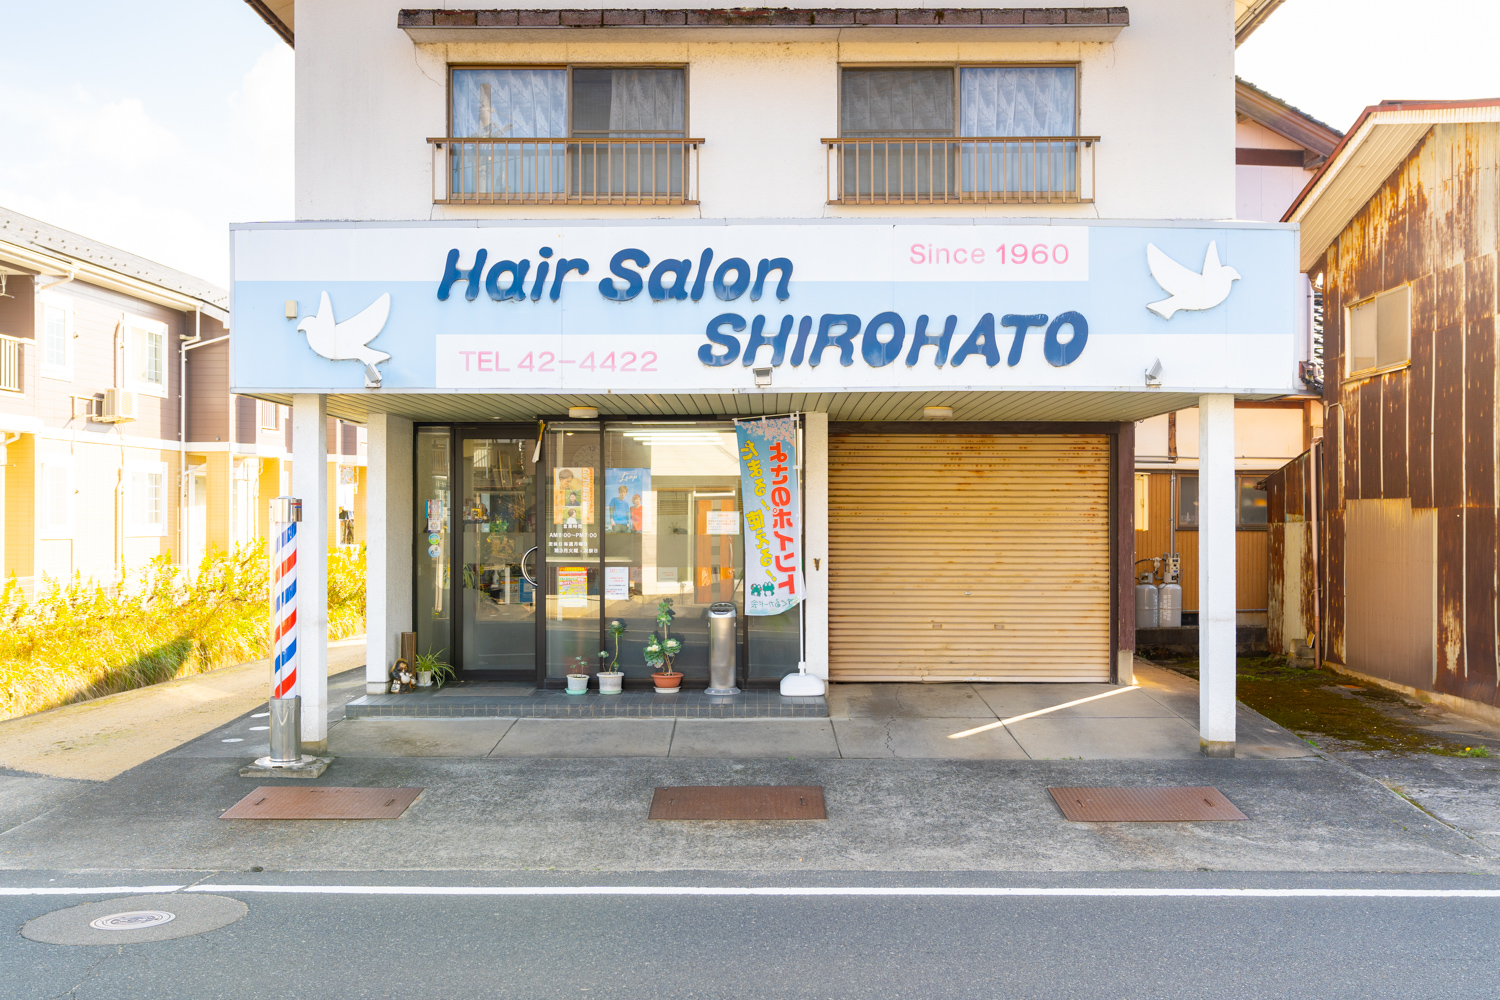 Hair Salon SHIROHATO